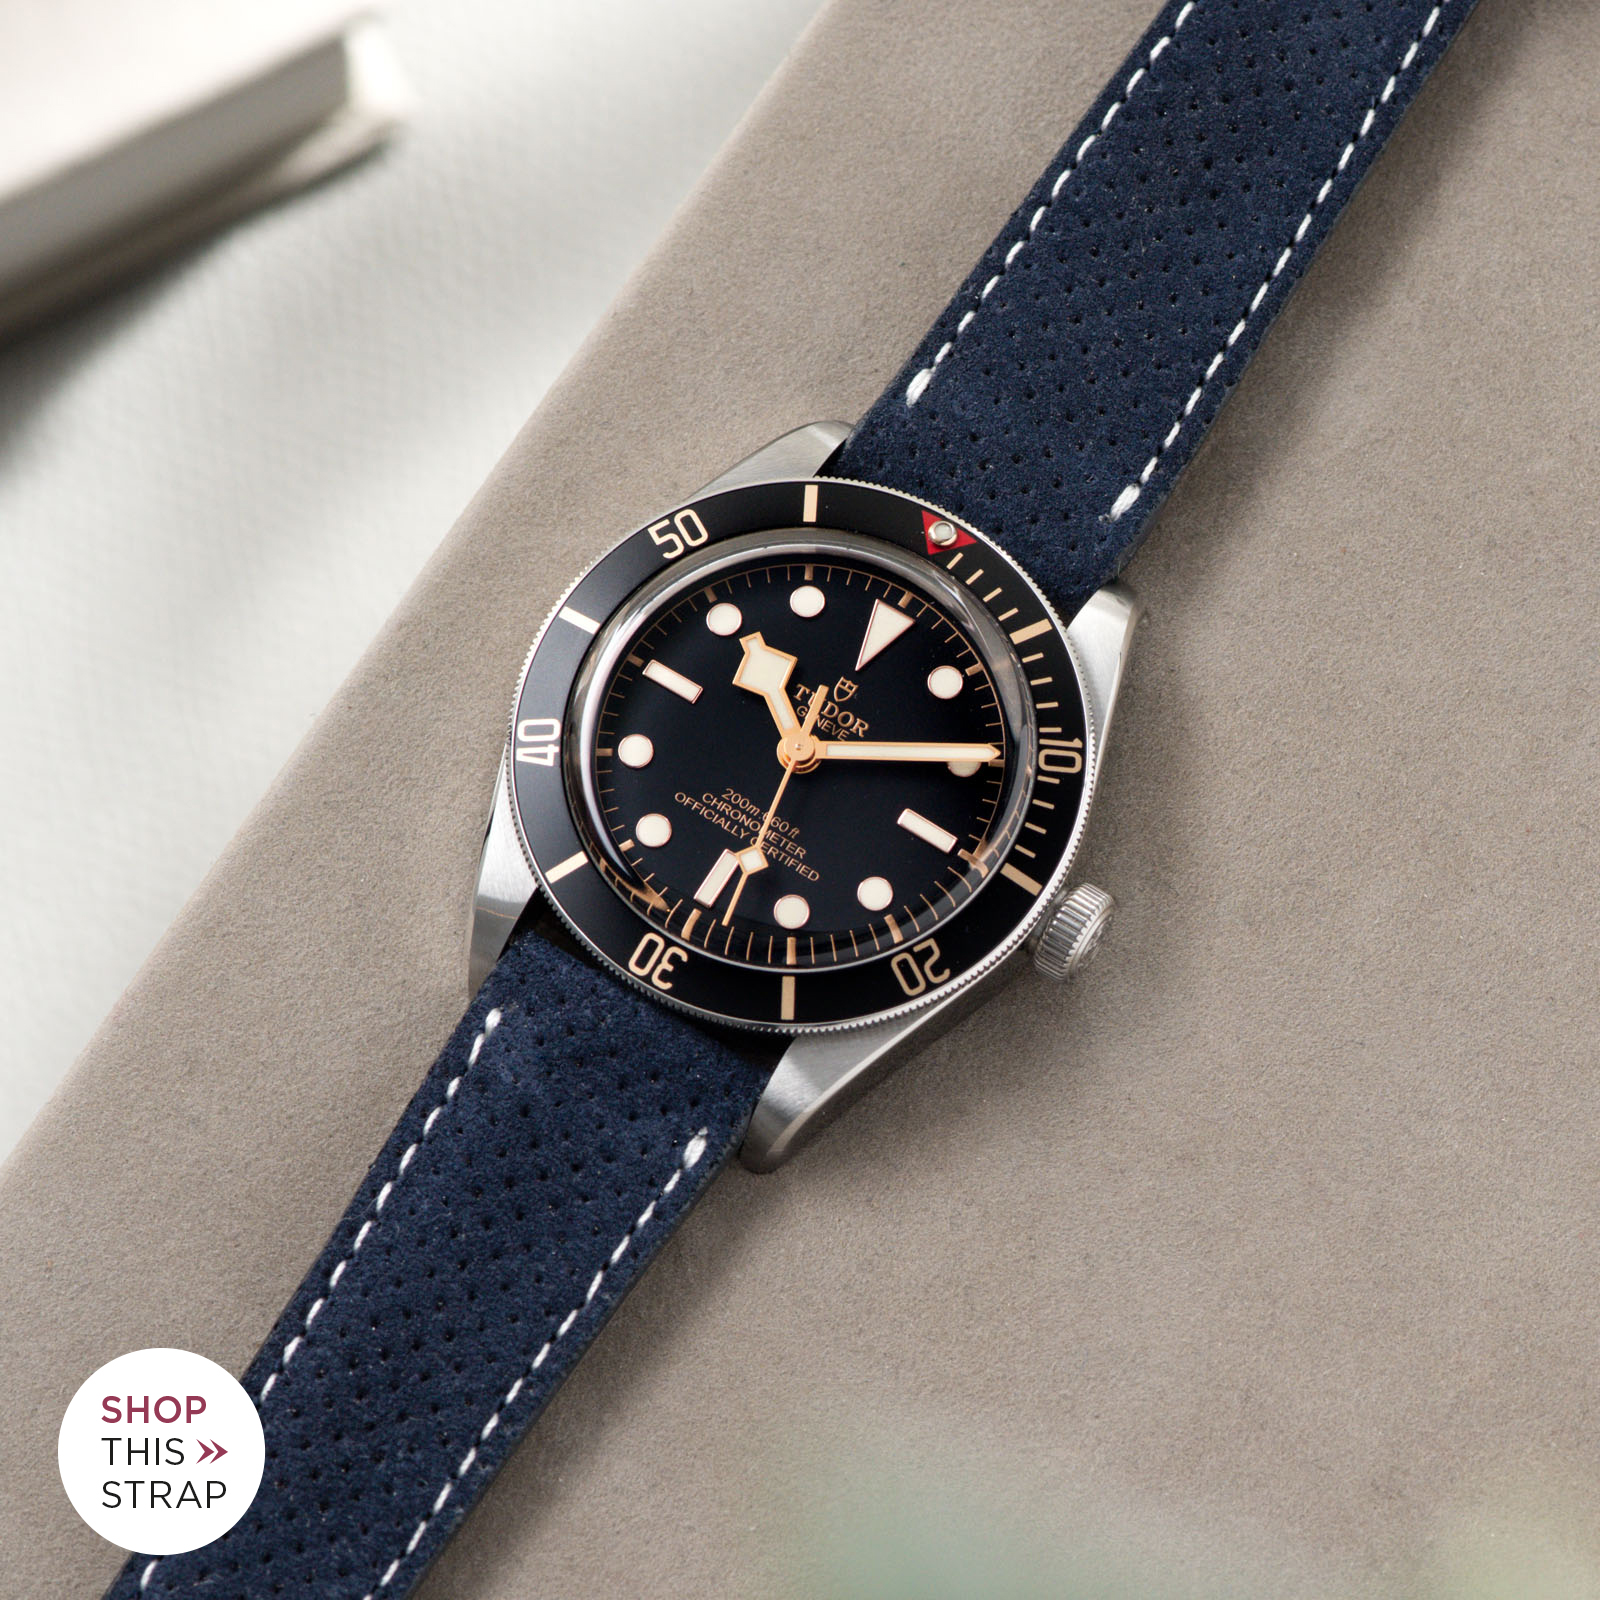 Bulang and Sons_Strap Guide_Tudor Black Bay 58_Punched Blue Silky Suede Leather Watch Strap